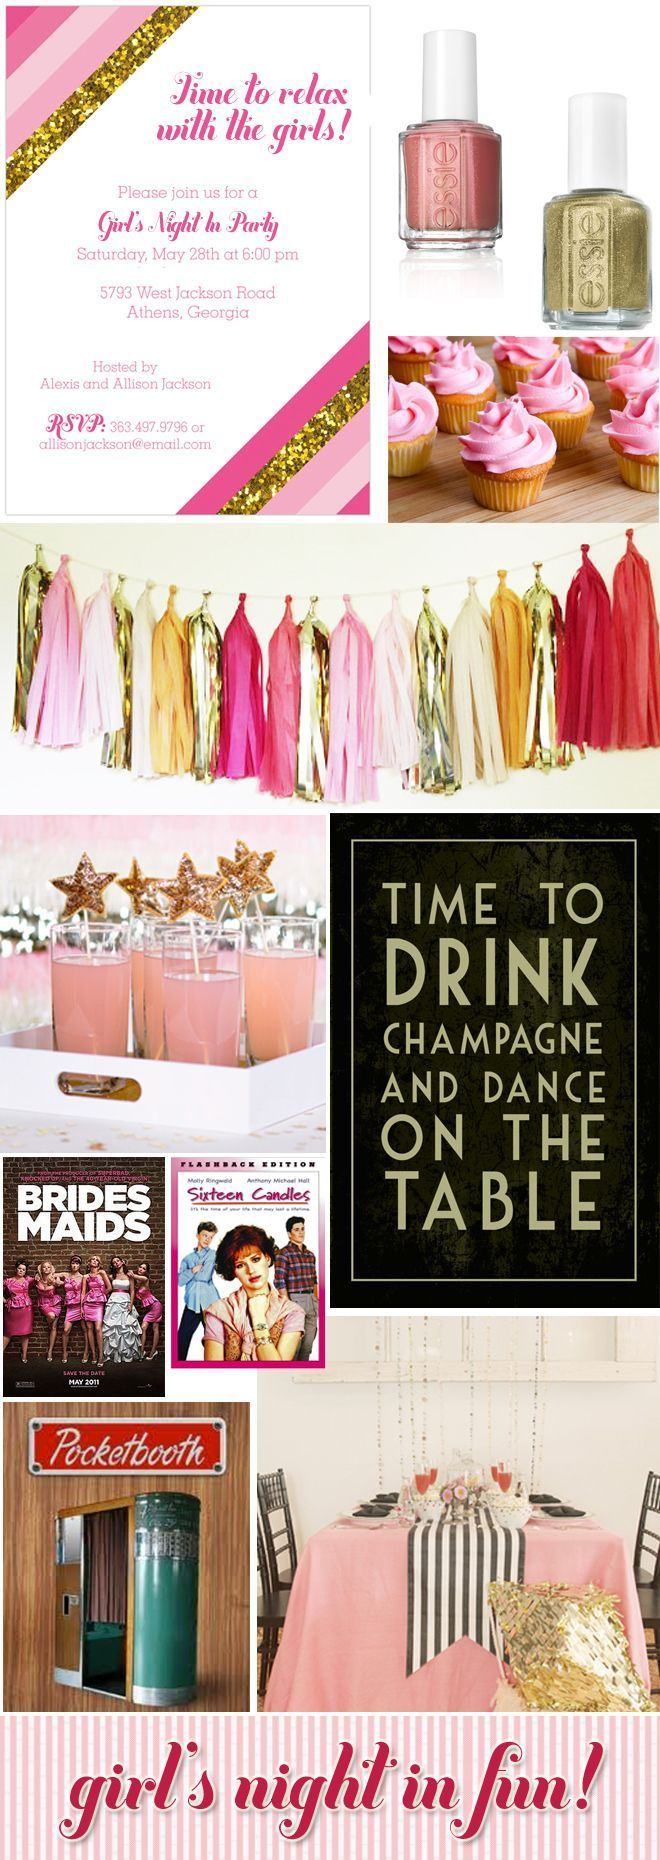 Party tips, party photos, and inspiration for throwing a Girls' Night In Party! Find resources, ideas from real parties, and more!